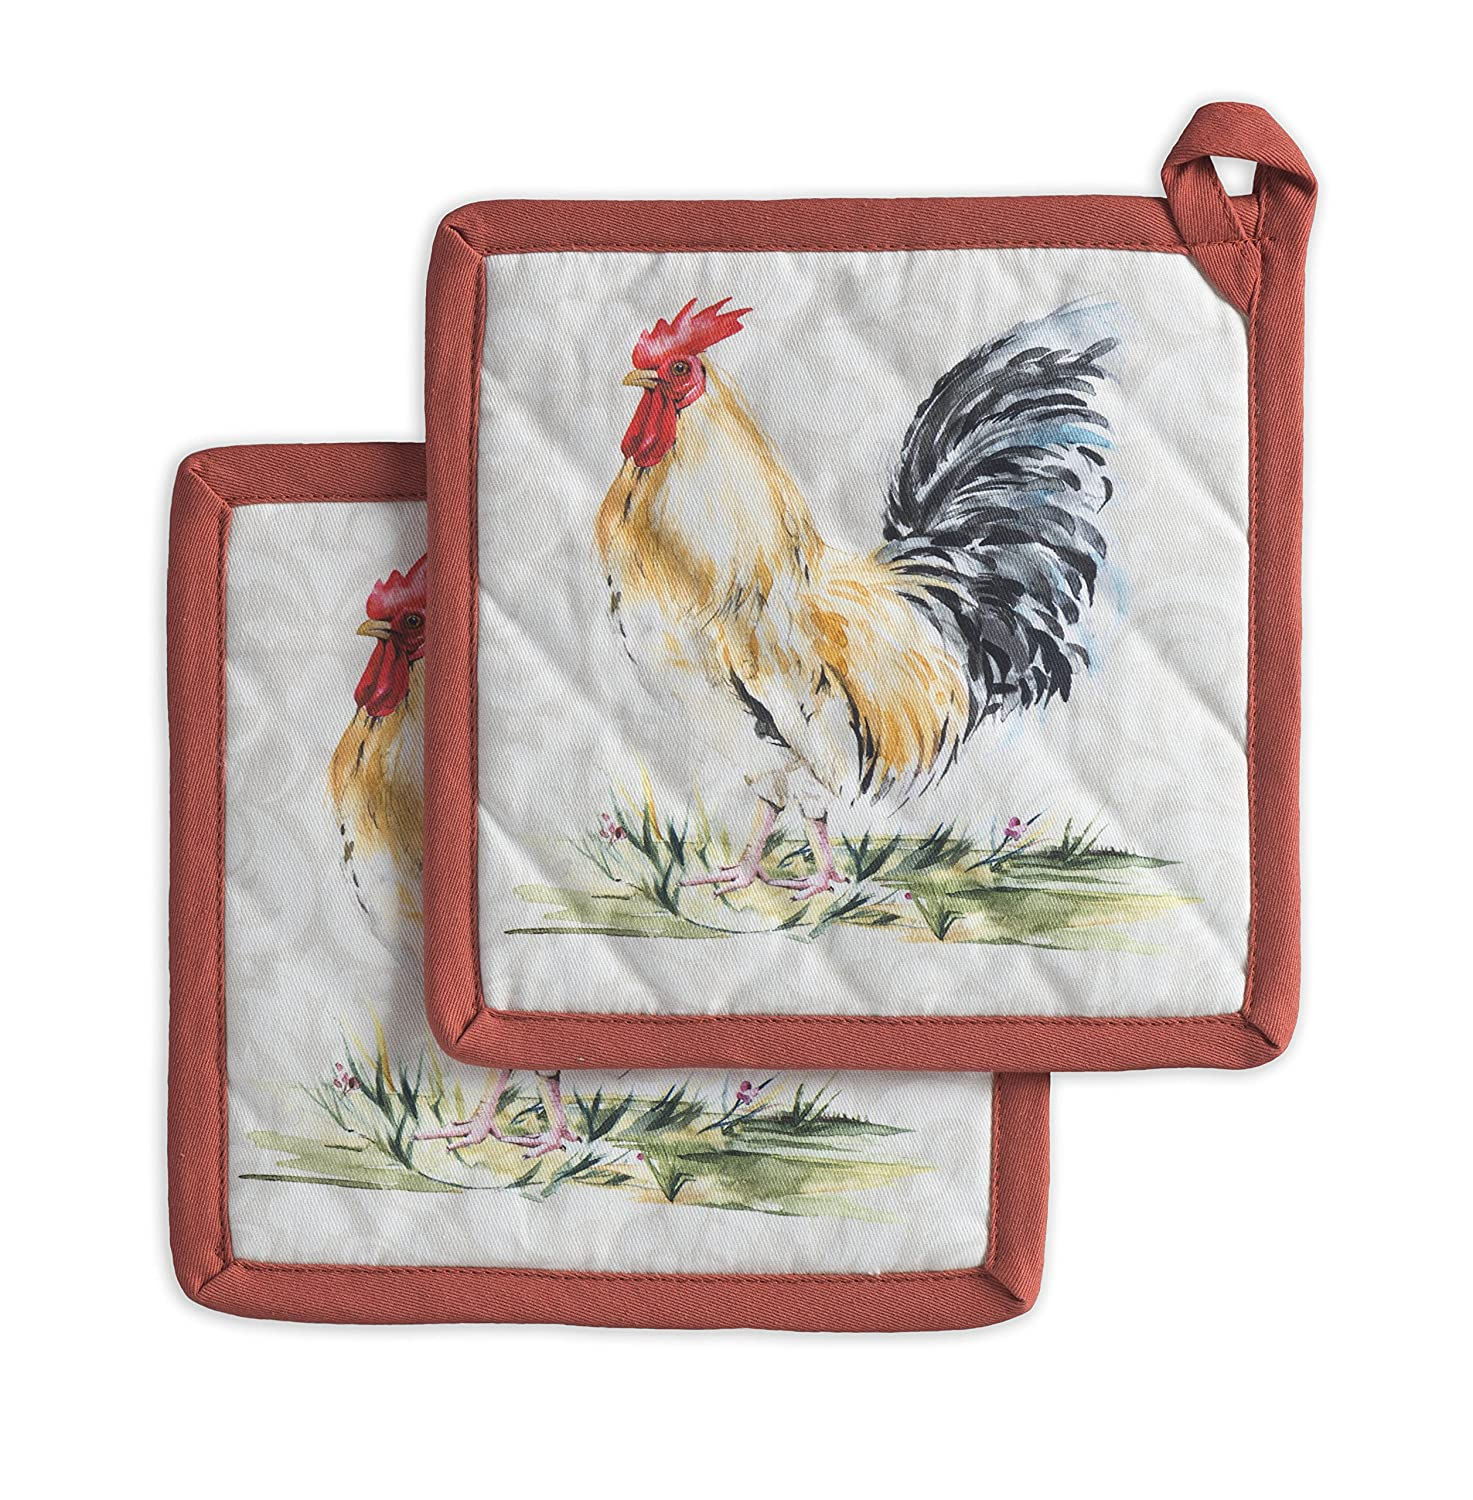 Maison d' Hermine Campagne 100% Cotton Set of 2 Pot Holders 8 Inch by 8 Inch Aspero